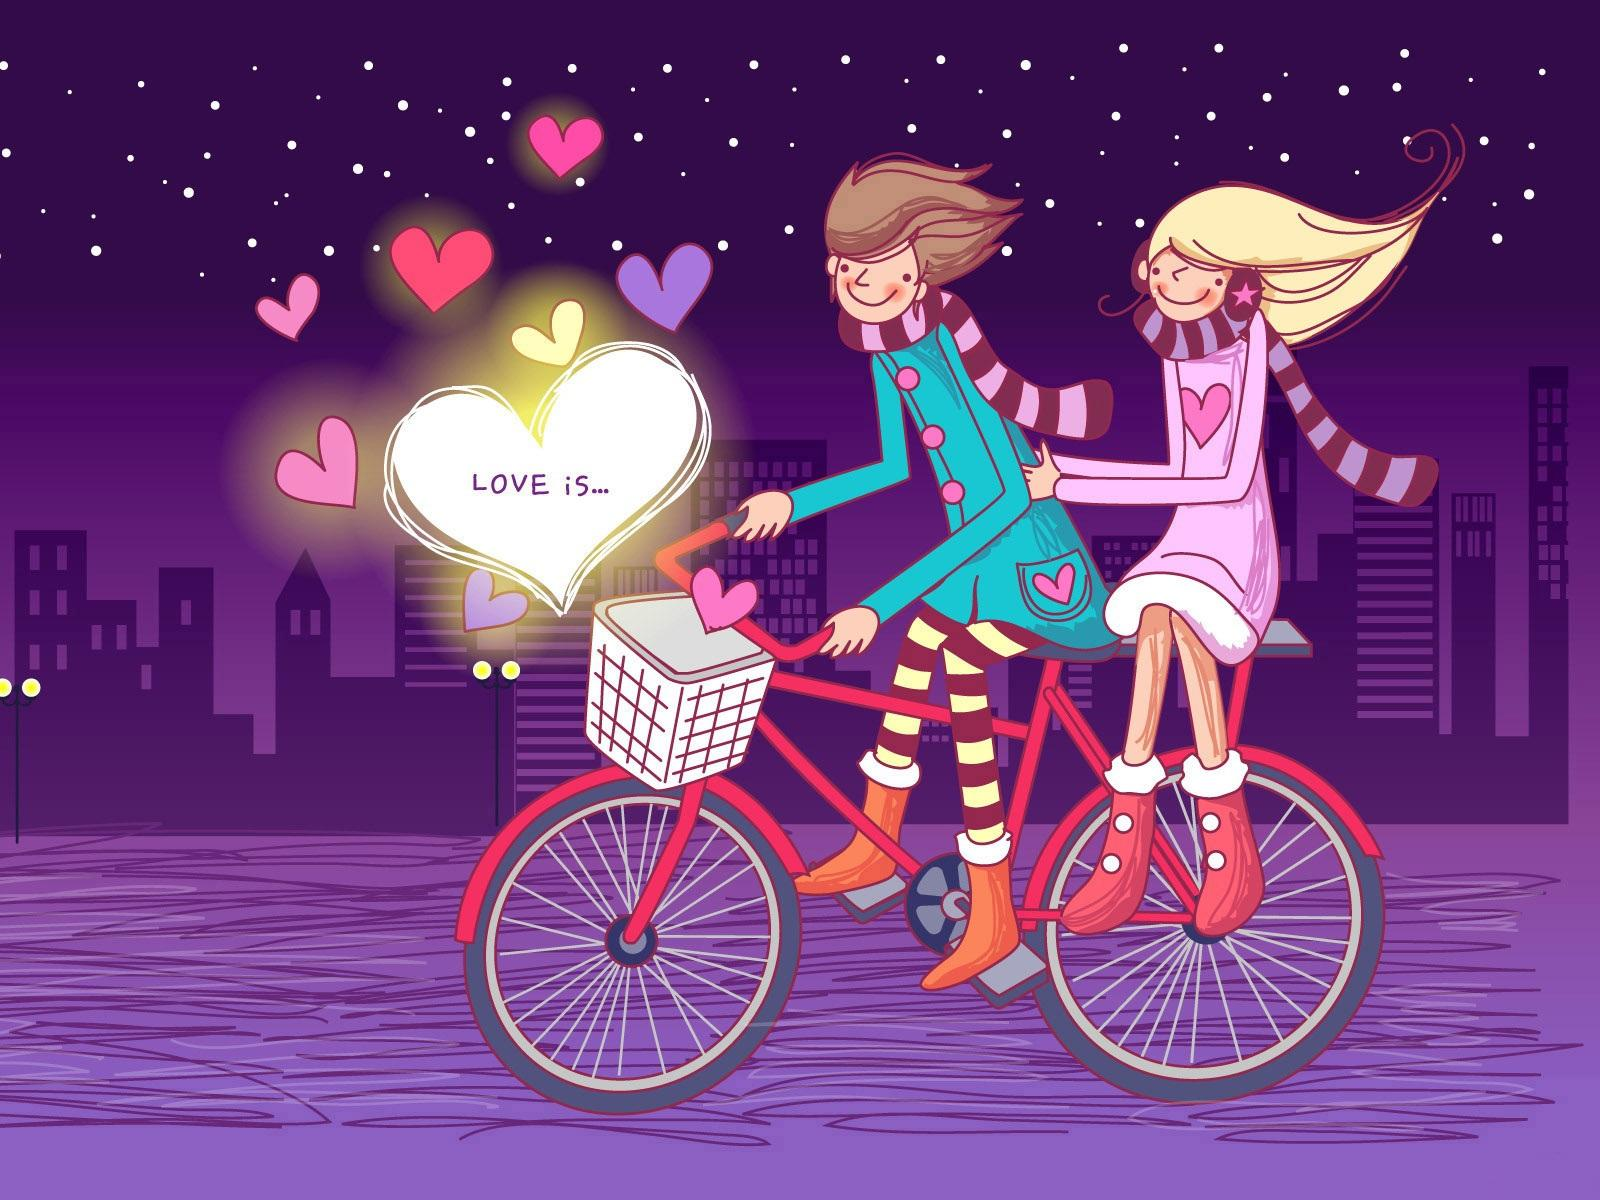 Free Romantic Images Wallpapers (49 Wallpapers) - Adorable Wallpapers